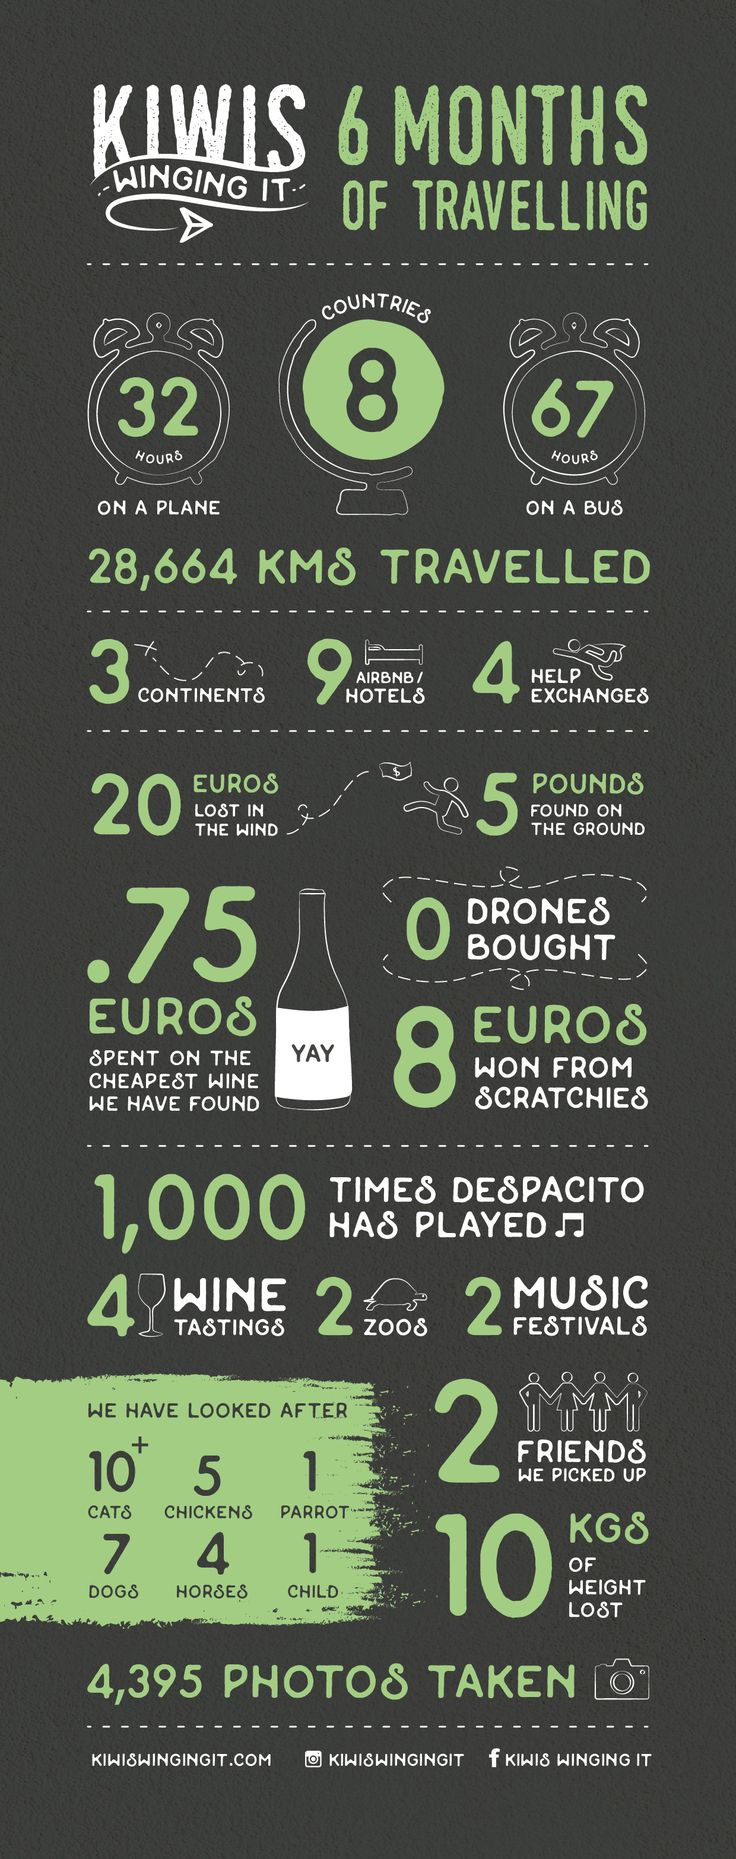 Infographic for Kiwis Winging It 6 months abroad. Statistics of what travelling for 6 months looks like. Fun, playful and structured design. www.kiwiswingingit.com @kiwiswingingit #Kiwiswingingit